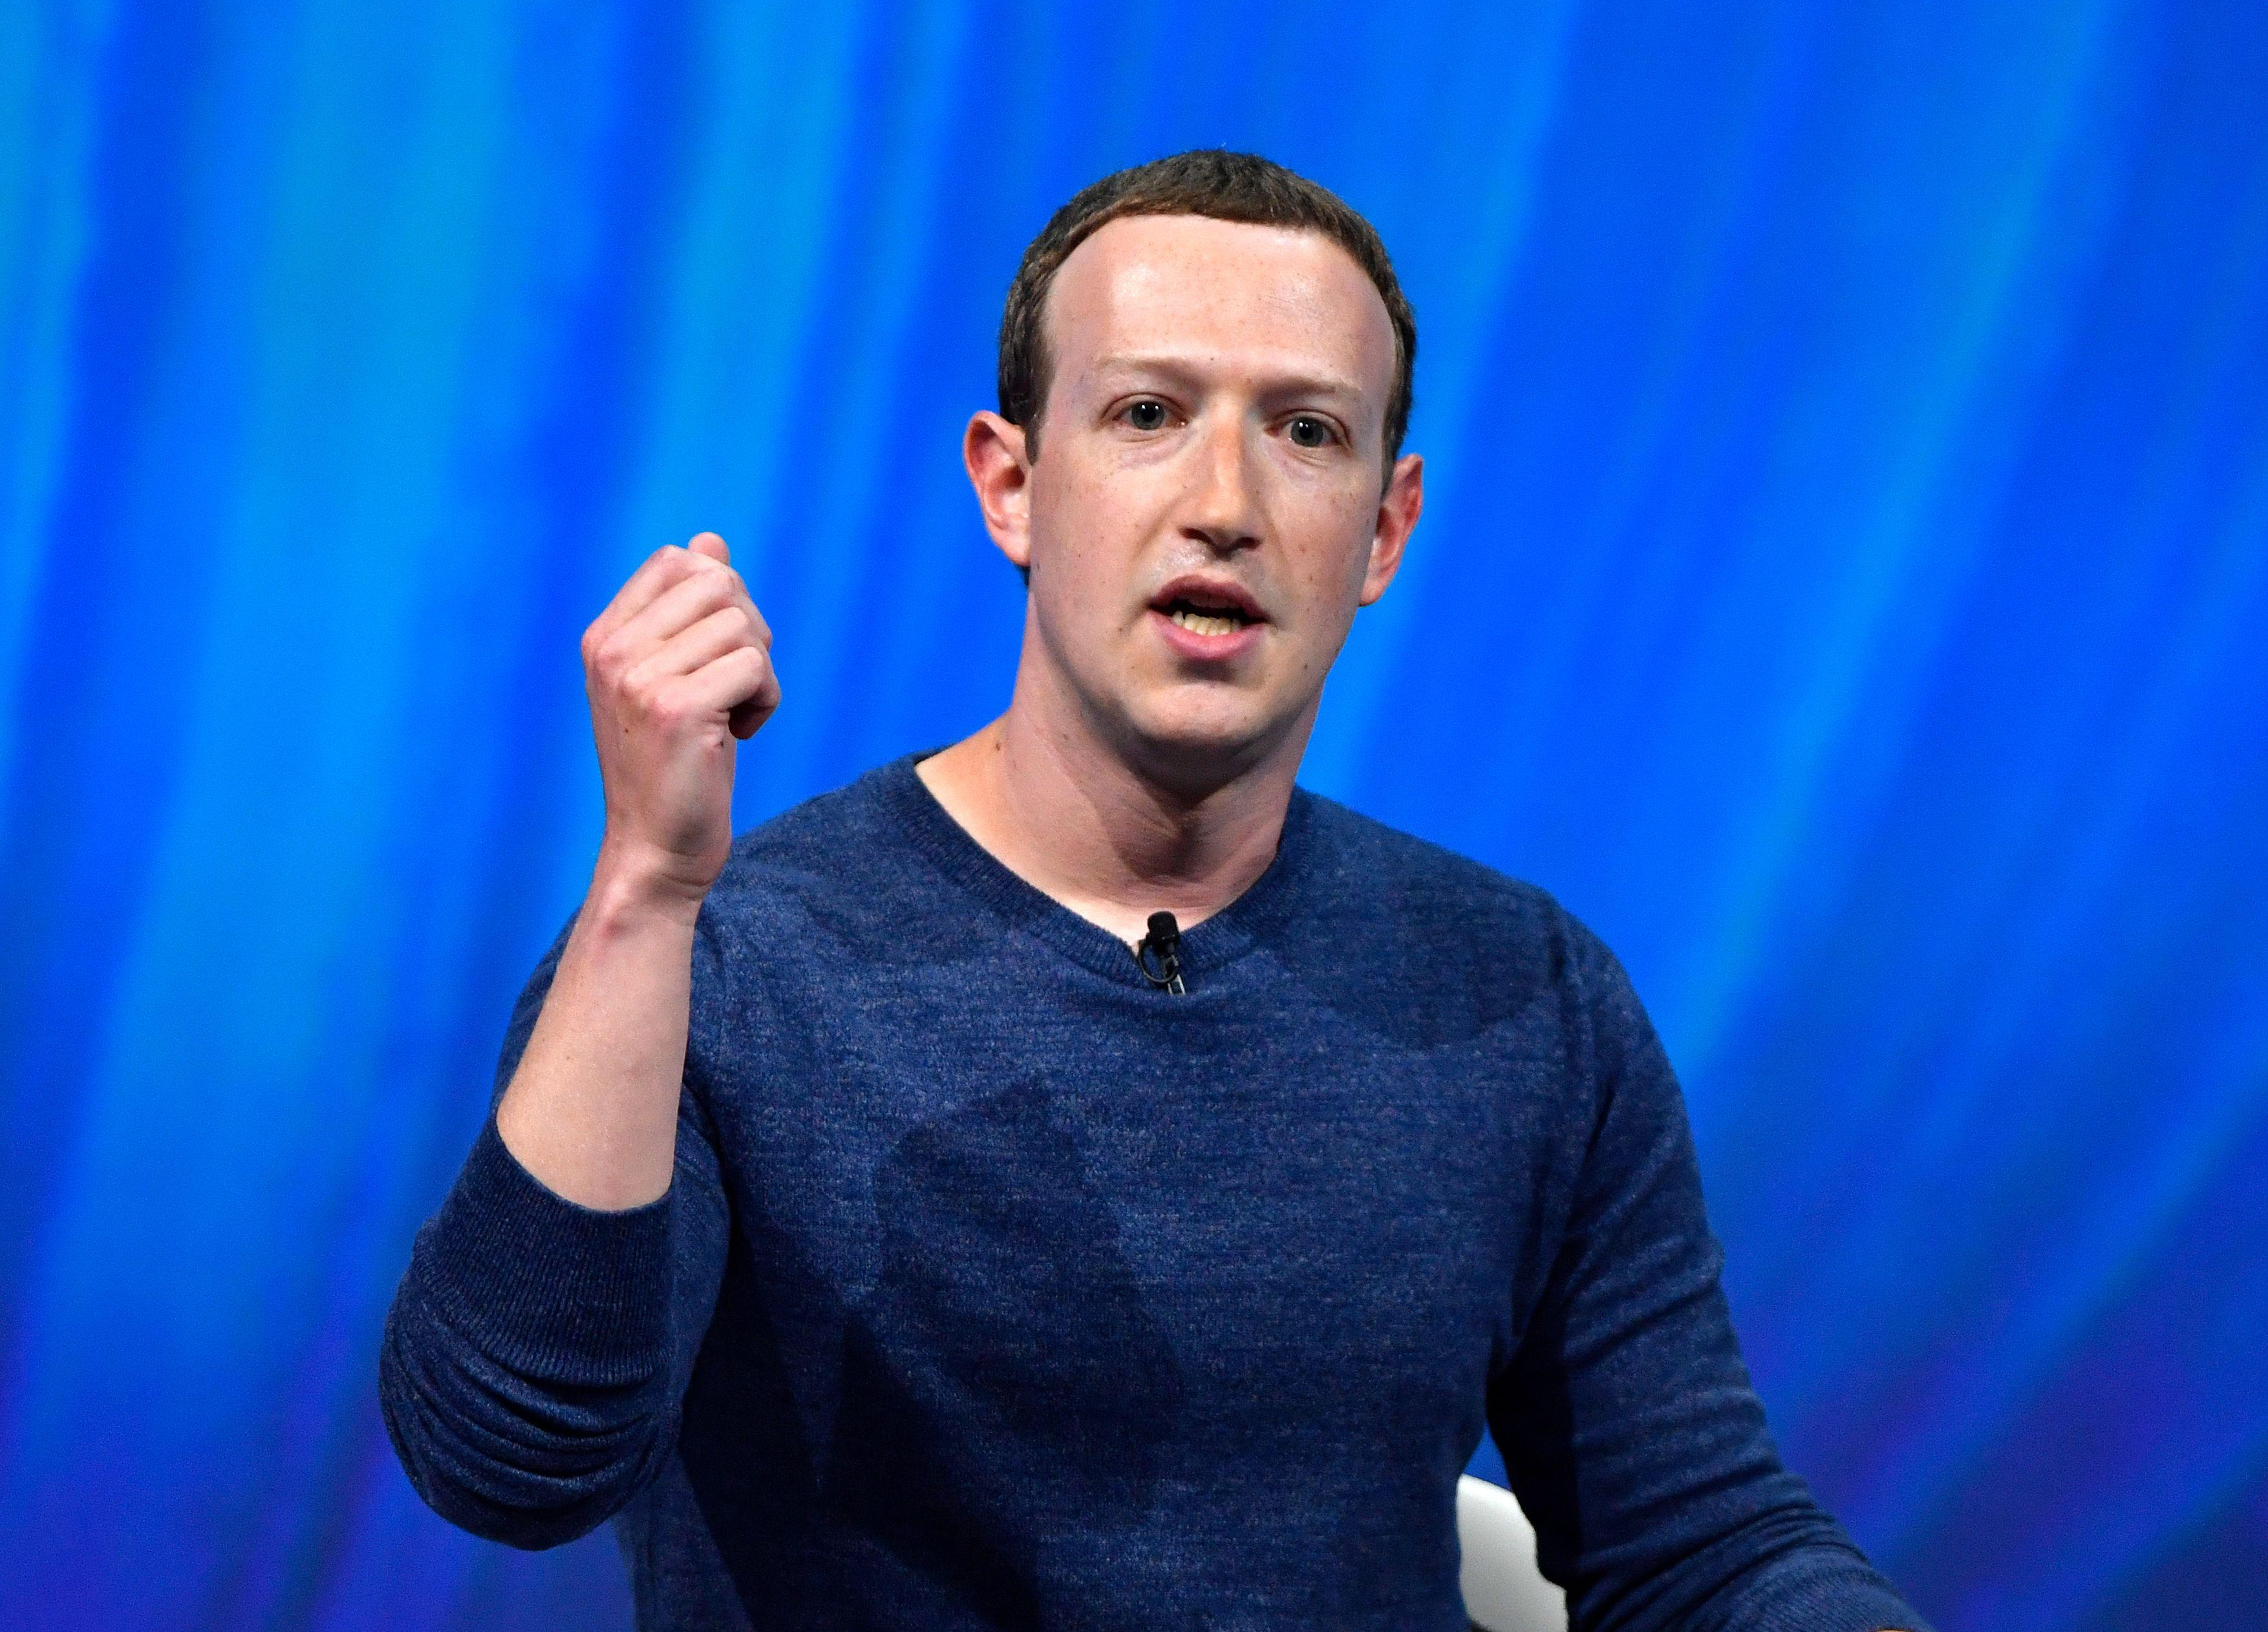 Facebook confirms it tracks your mouse movements on the screen